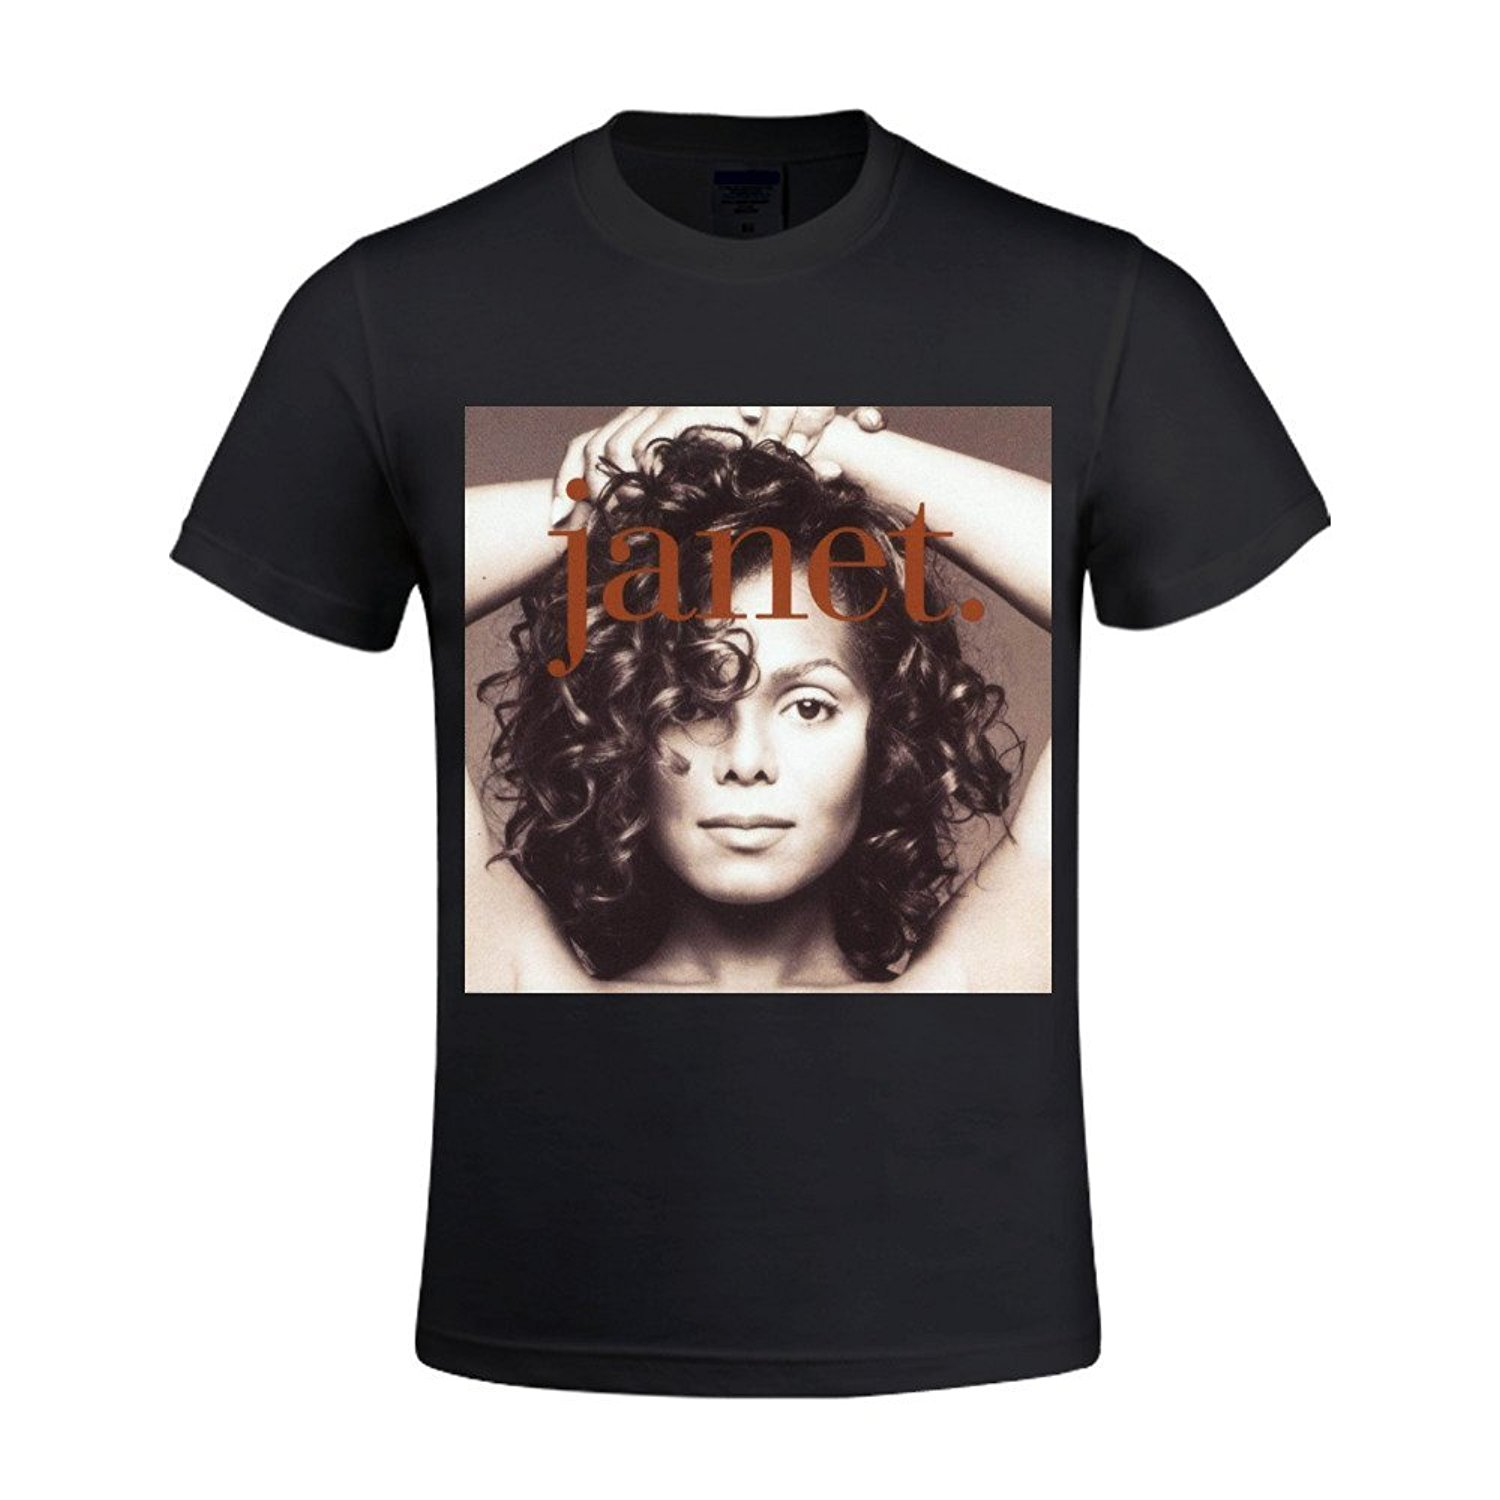 ee08fb0a Casual T-shirts Hip Hop Style Tops Tee S-2xl Janet Jackson Janet Shirts 100  Cotton Men O Neck